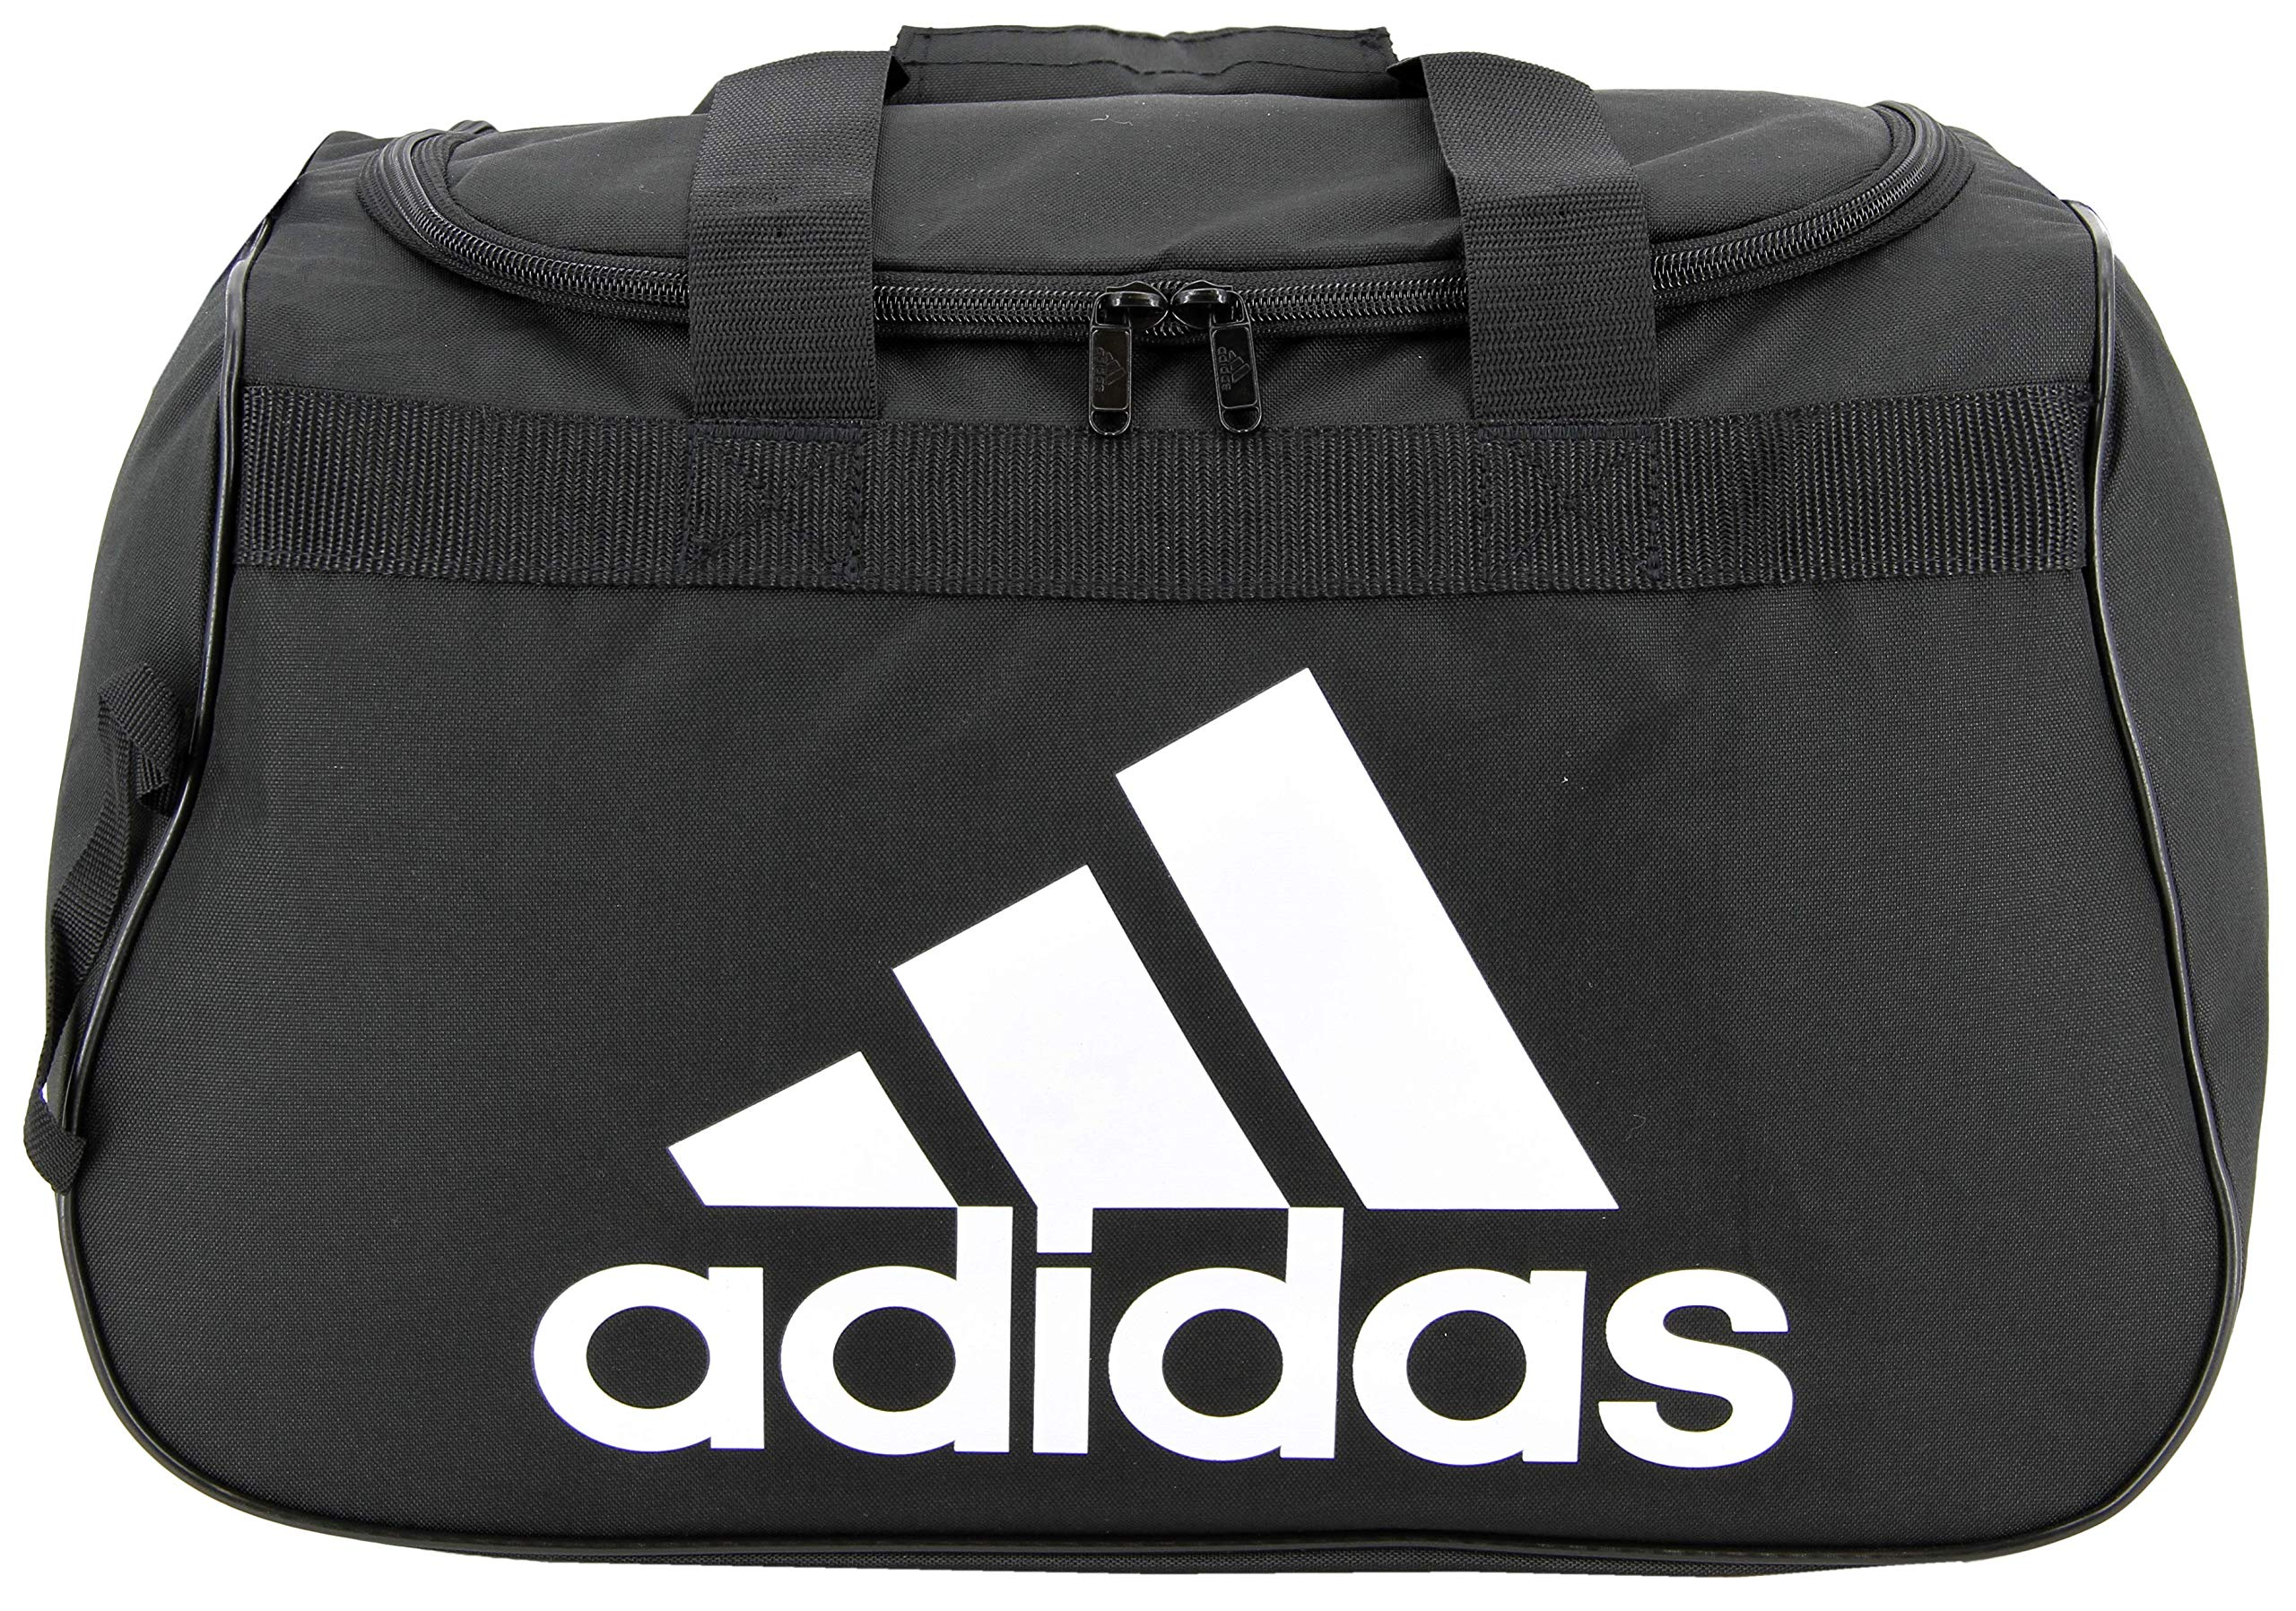 adidas Unisex Diablo Small Duffel Bag, Black, ONE SIZE by adidas